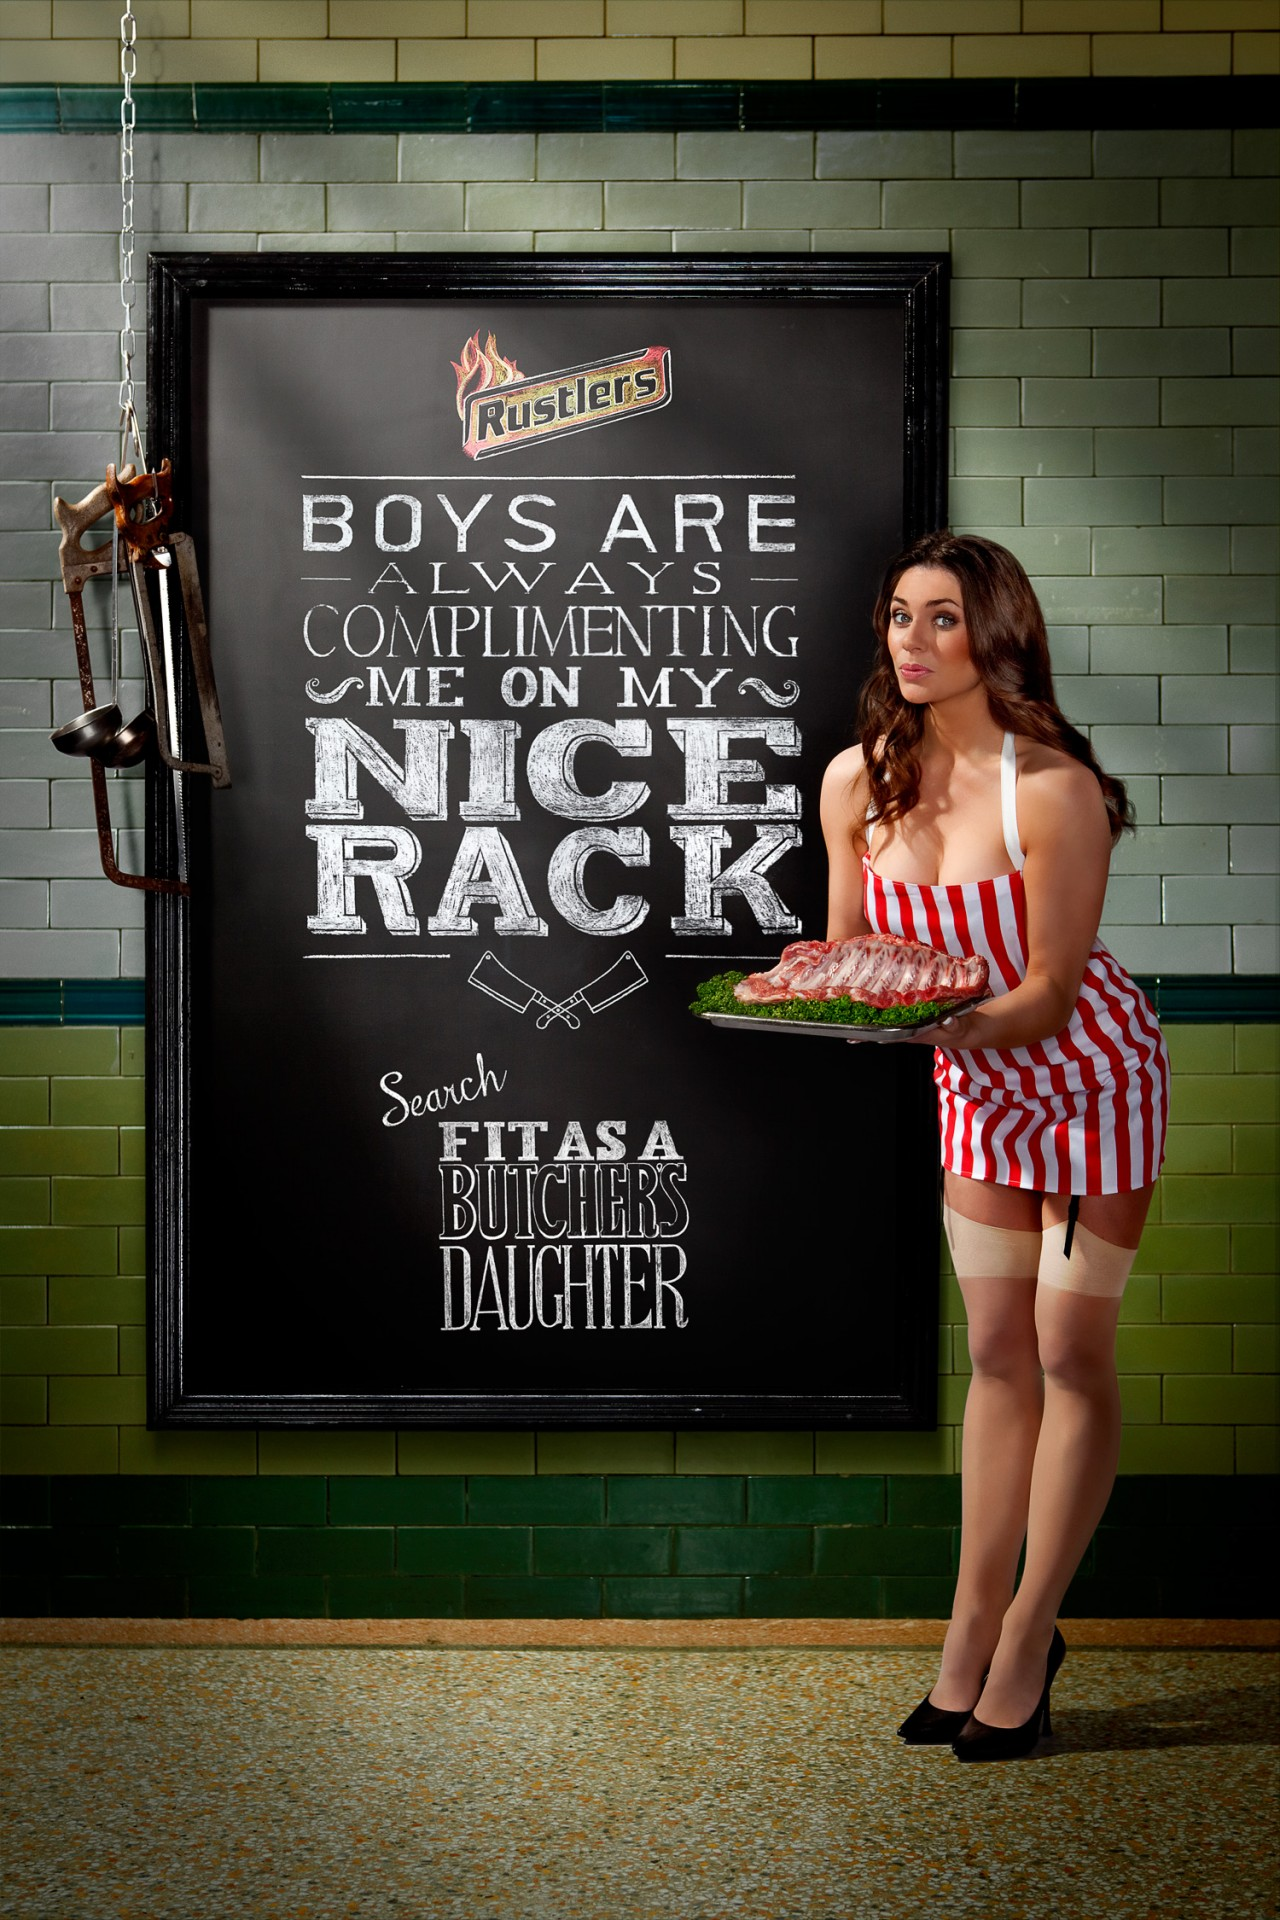 Rustlers unveils 'fit as a butcher's daughter' campaign ...